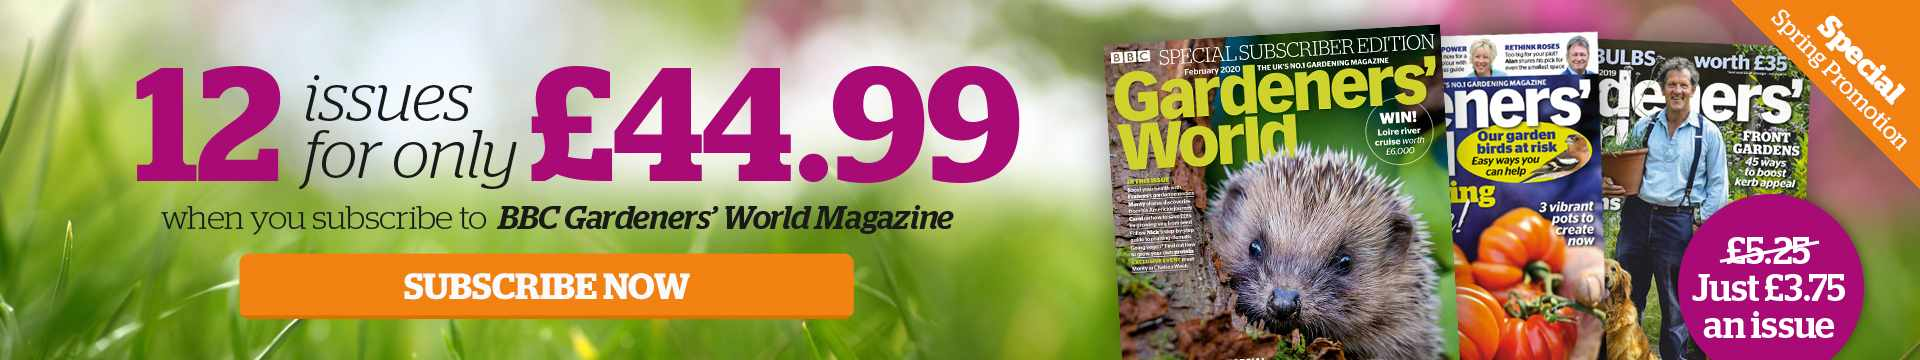 Save 29% on a BBC Gardeners' World Magazine subscription